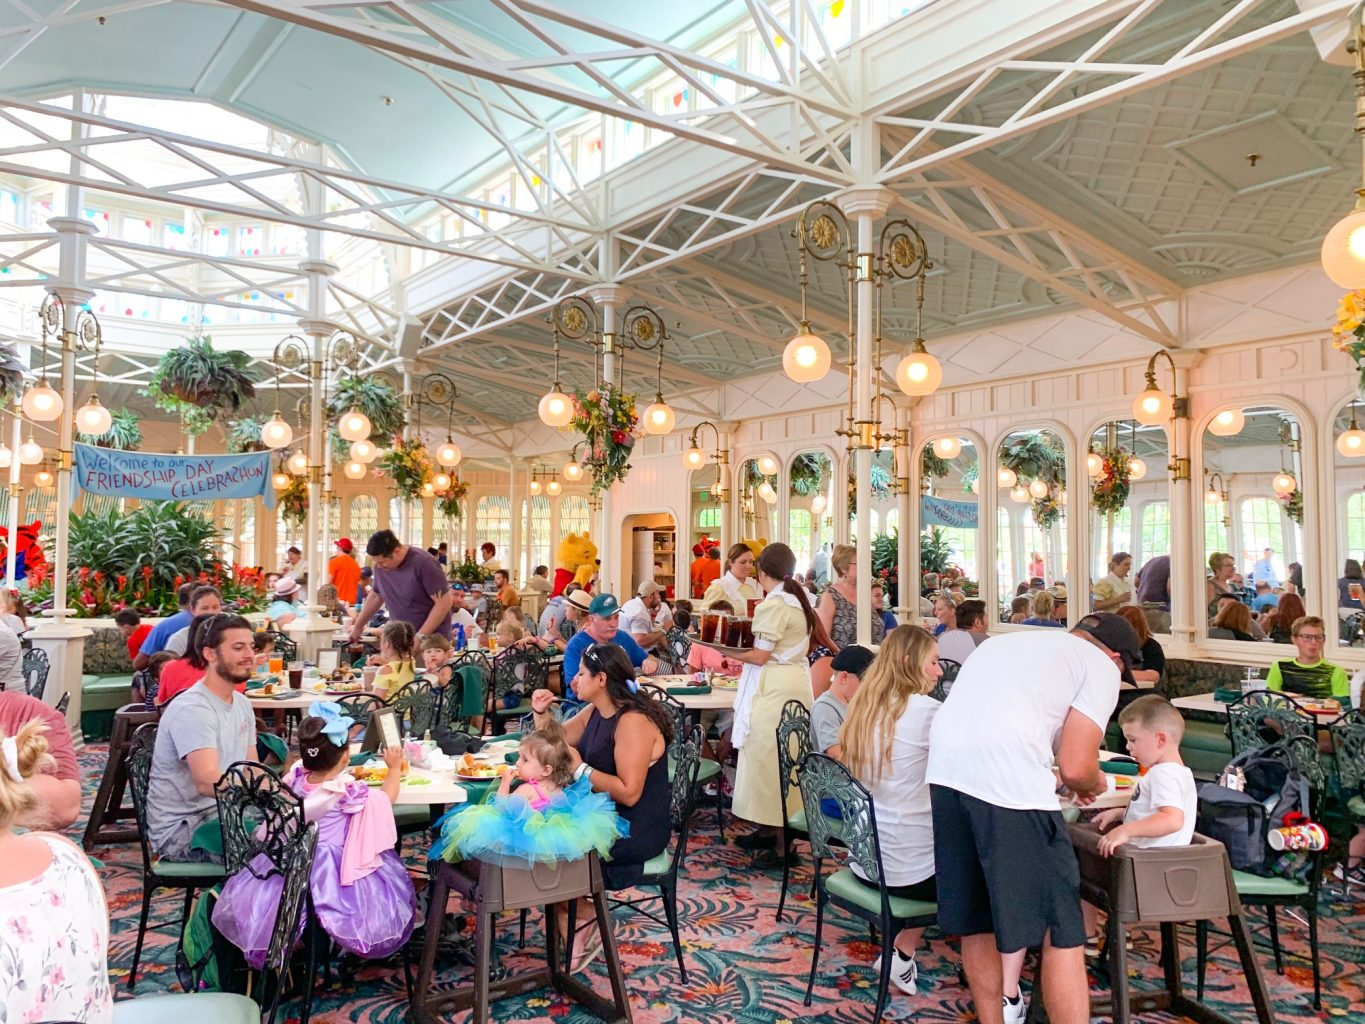 Crystal Palace is one of the best character dining options at Disney restaurants